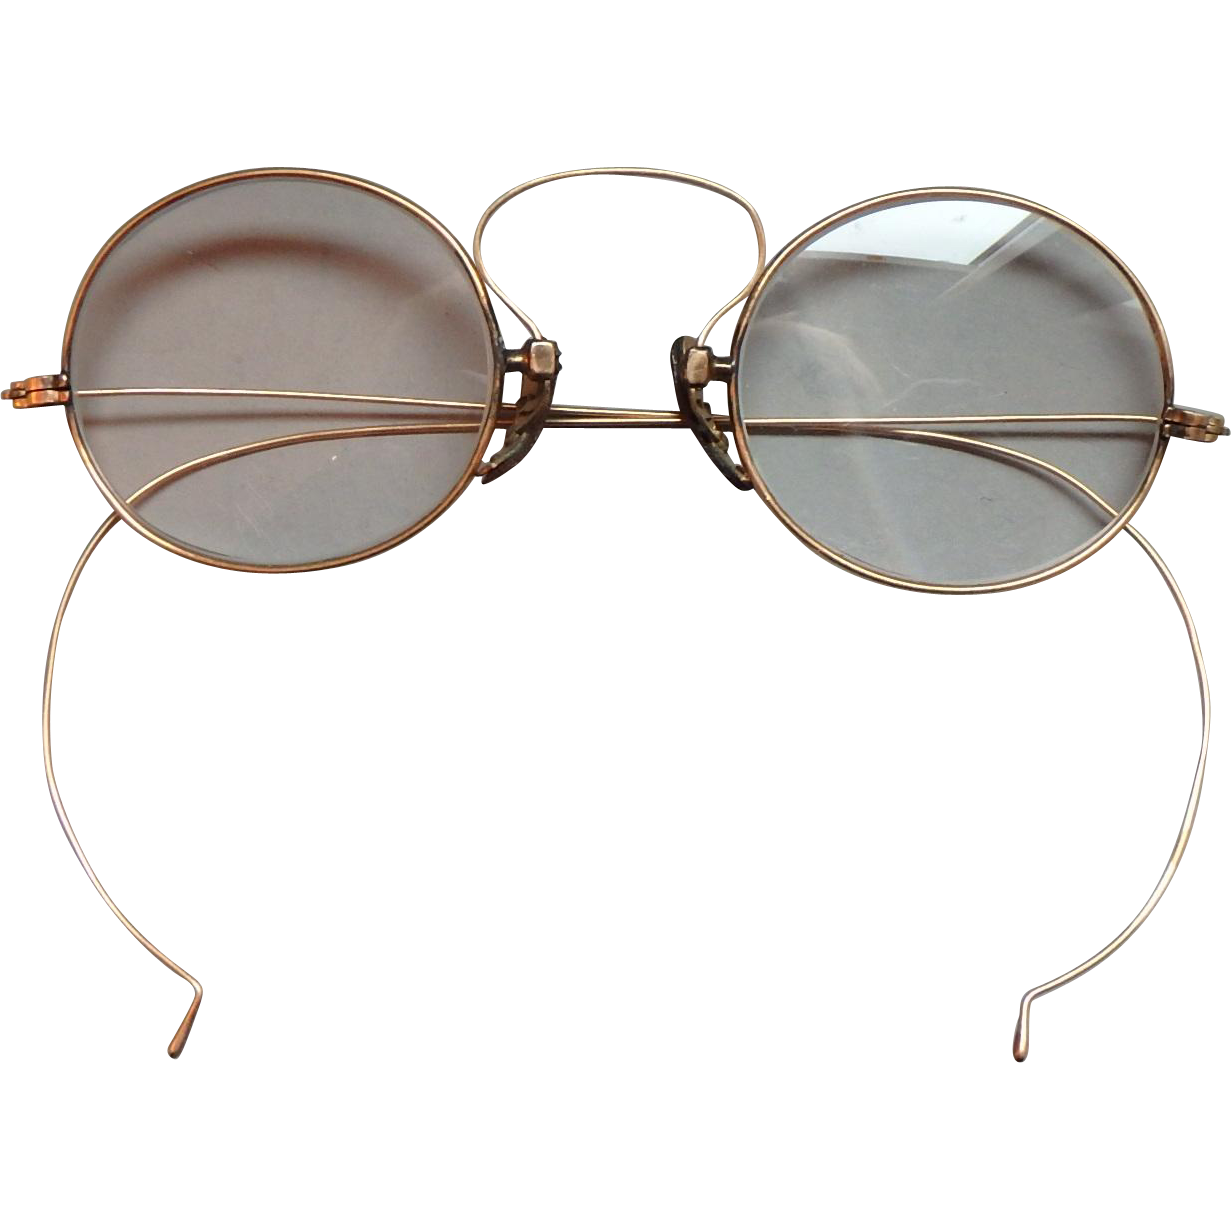 4b6d7bcce6 Antique 14k Gold Wire Rimmed Eyeglasses This pair of glasses is light and  comfortable. The nose pieces are engraved with a non-slip surface.